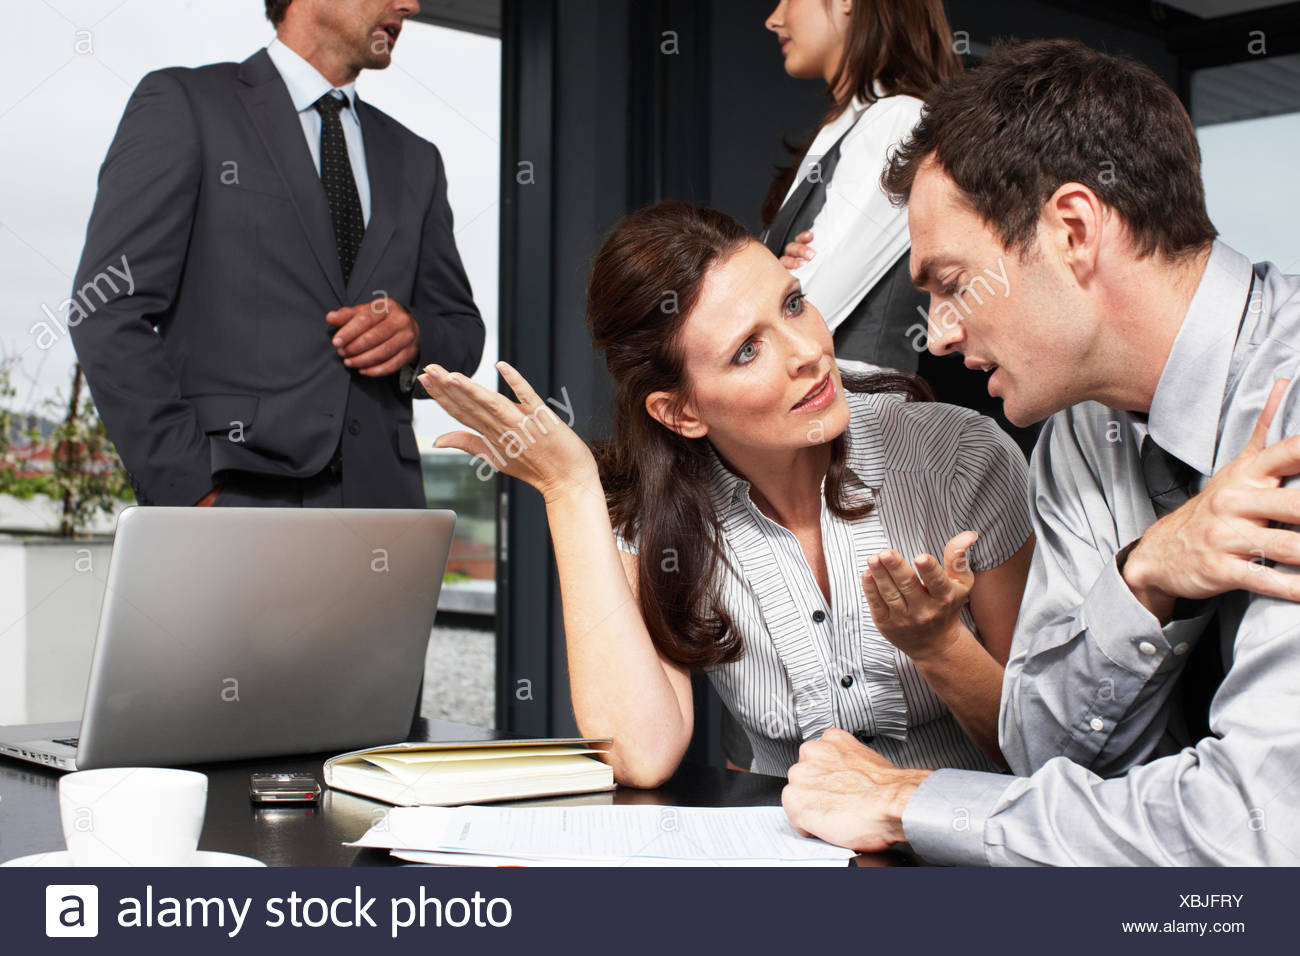 Business woman speaking to a younger man - Stock Image